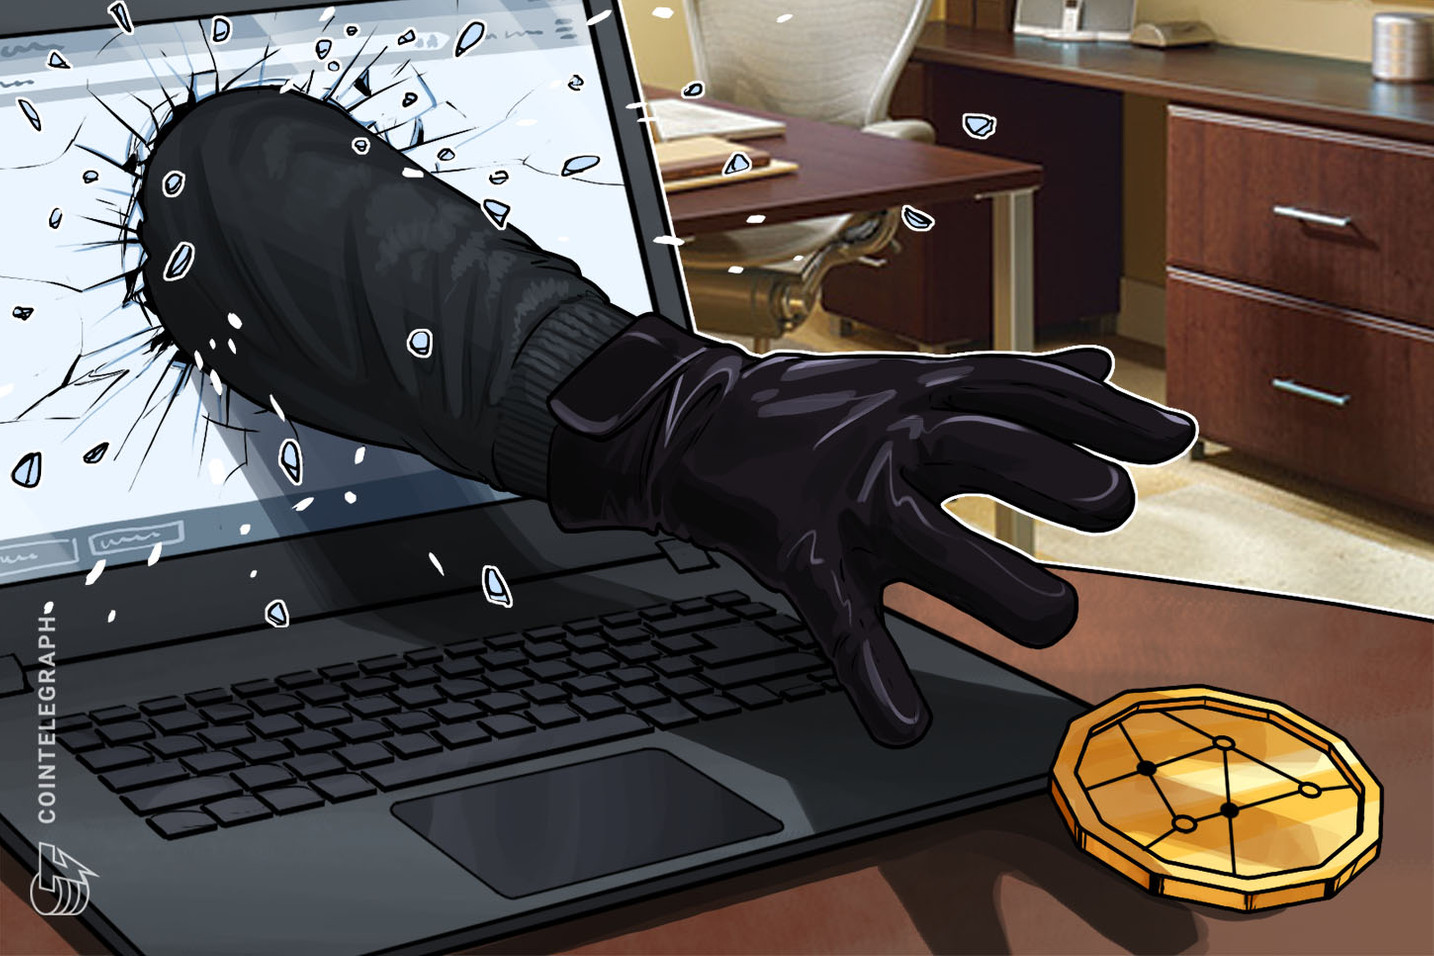 Turkish Police Arrest 24 Suspects Involved in Hacking Crypto Firm, Local Media Reports